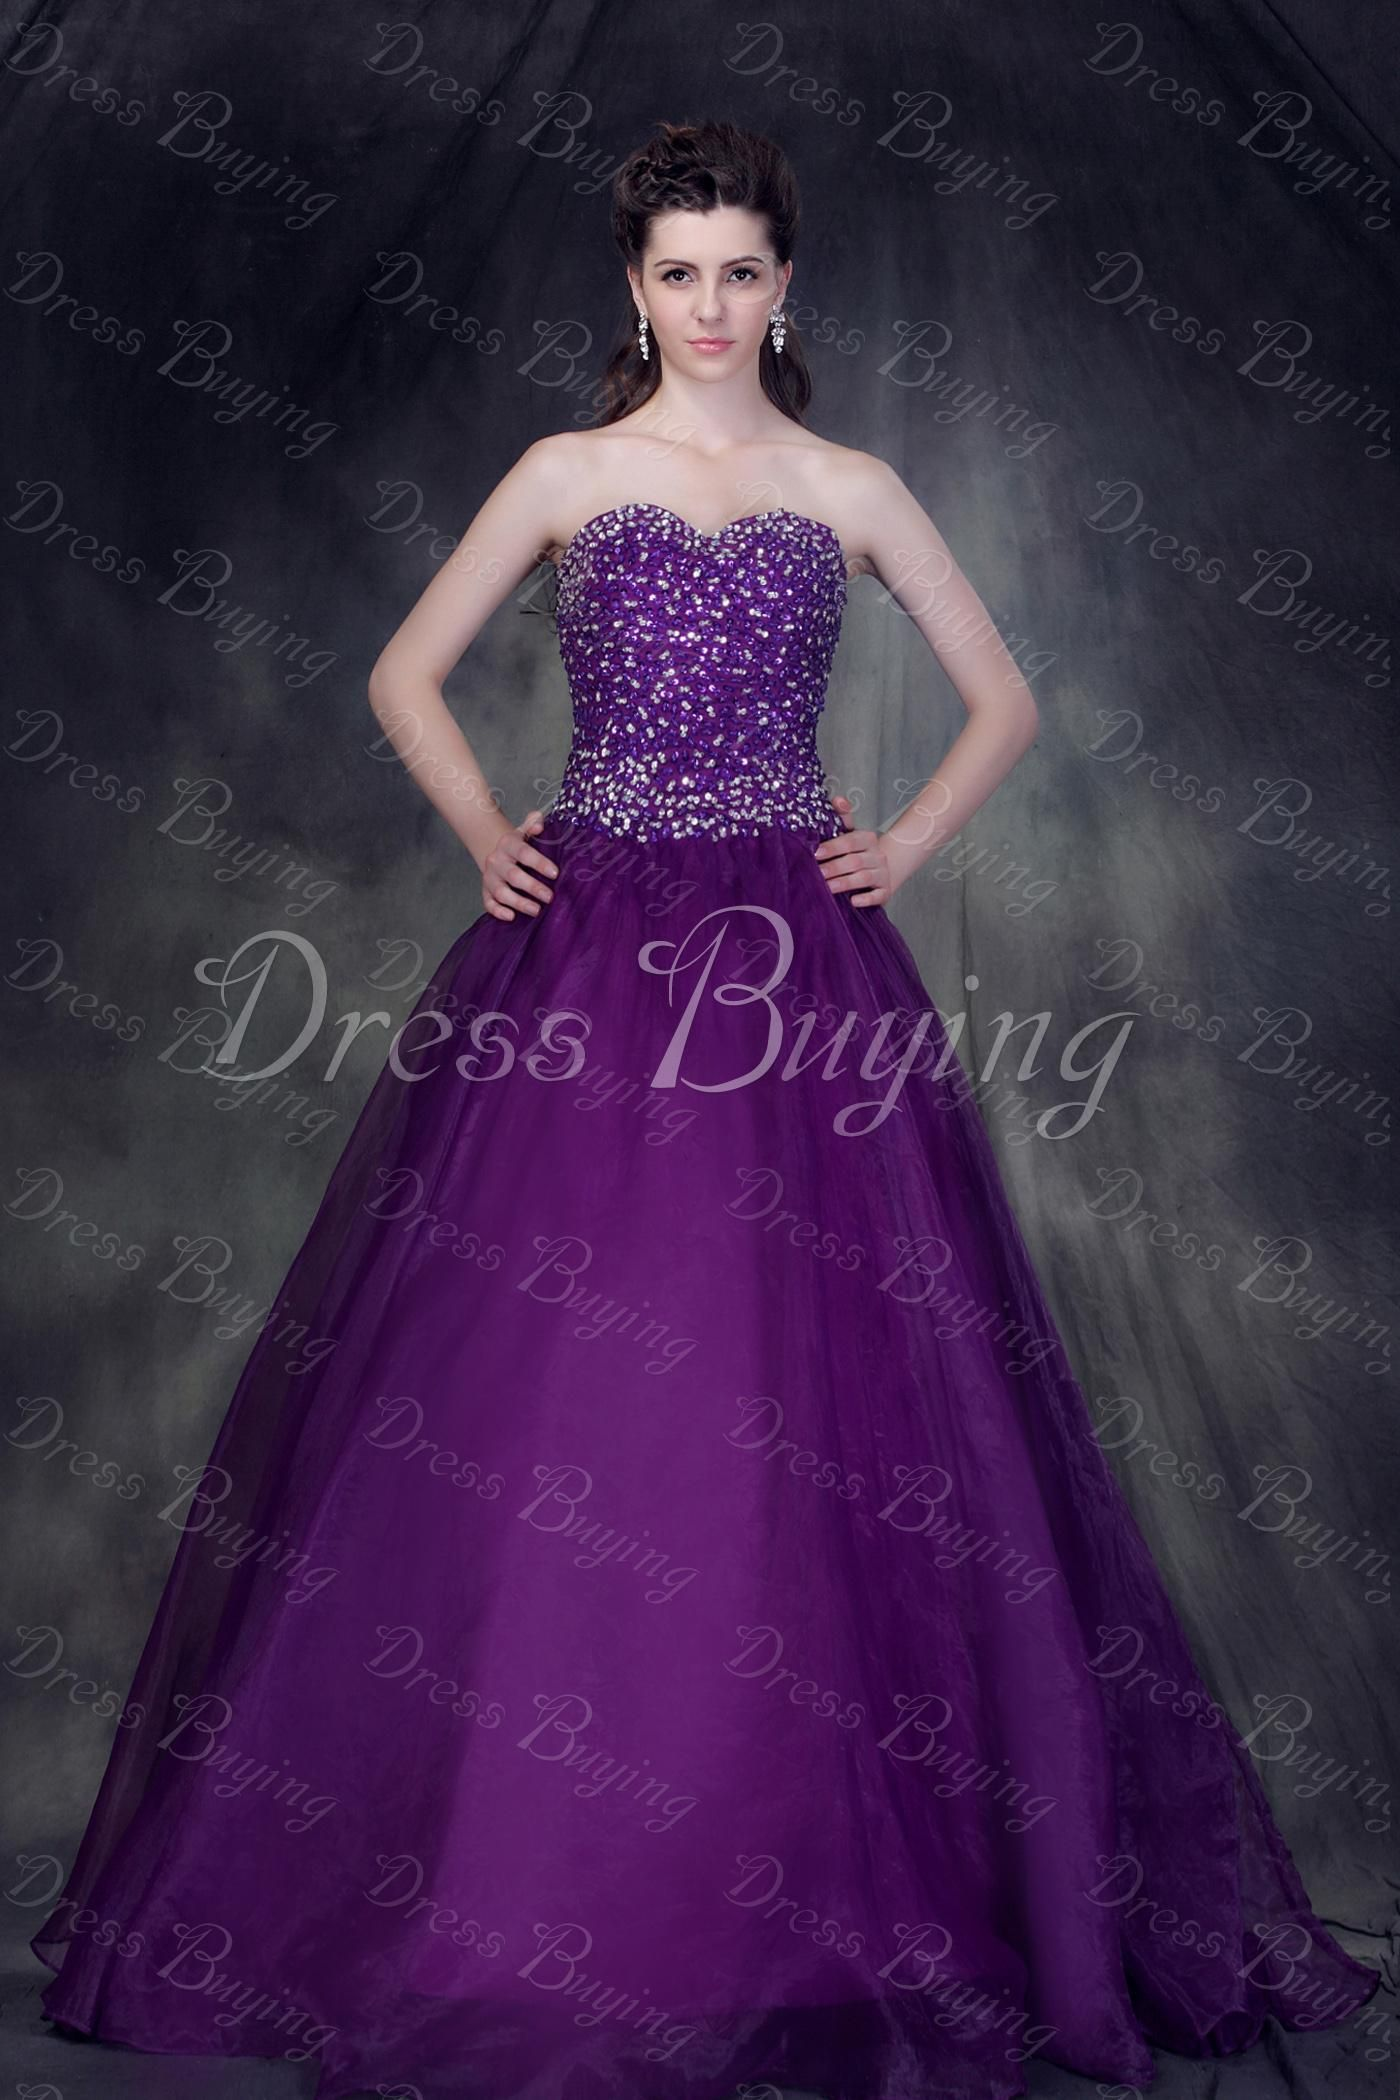 Elegant A-Line Floor-Length Strapless  Ball Gown/Quinceanera Dress —— US$ 178.99